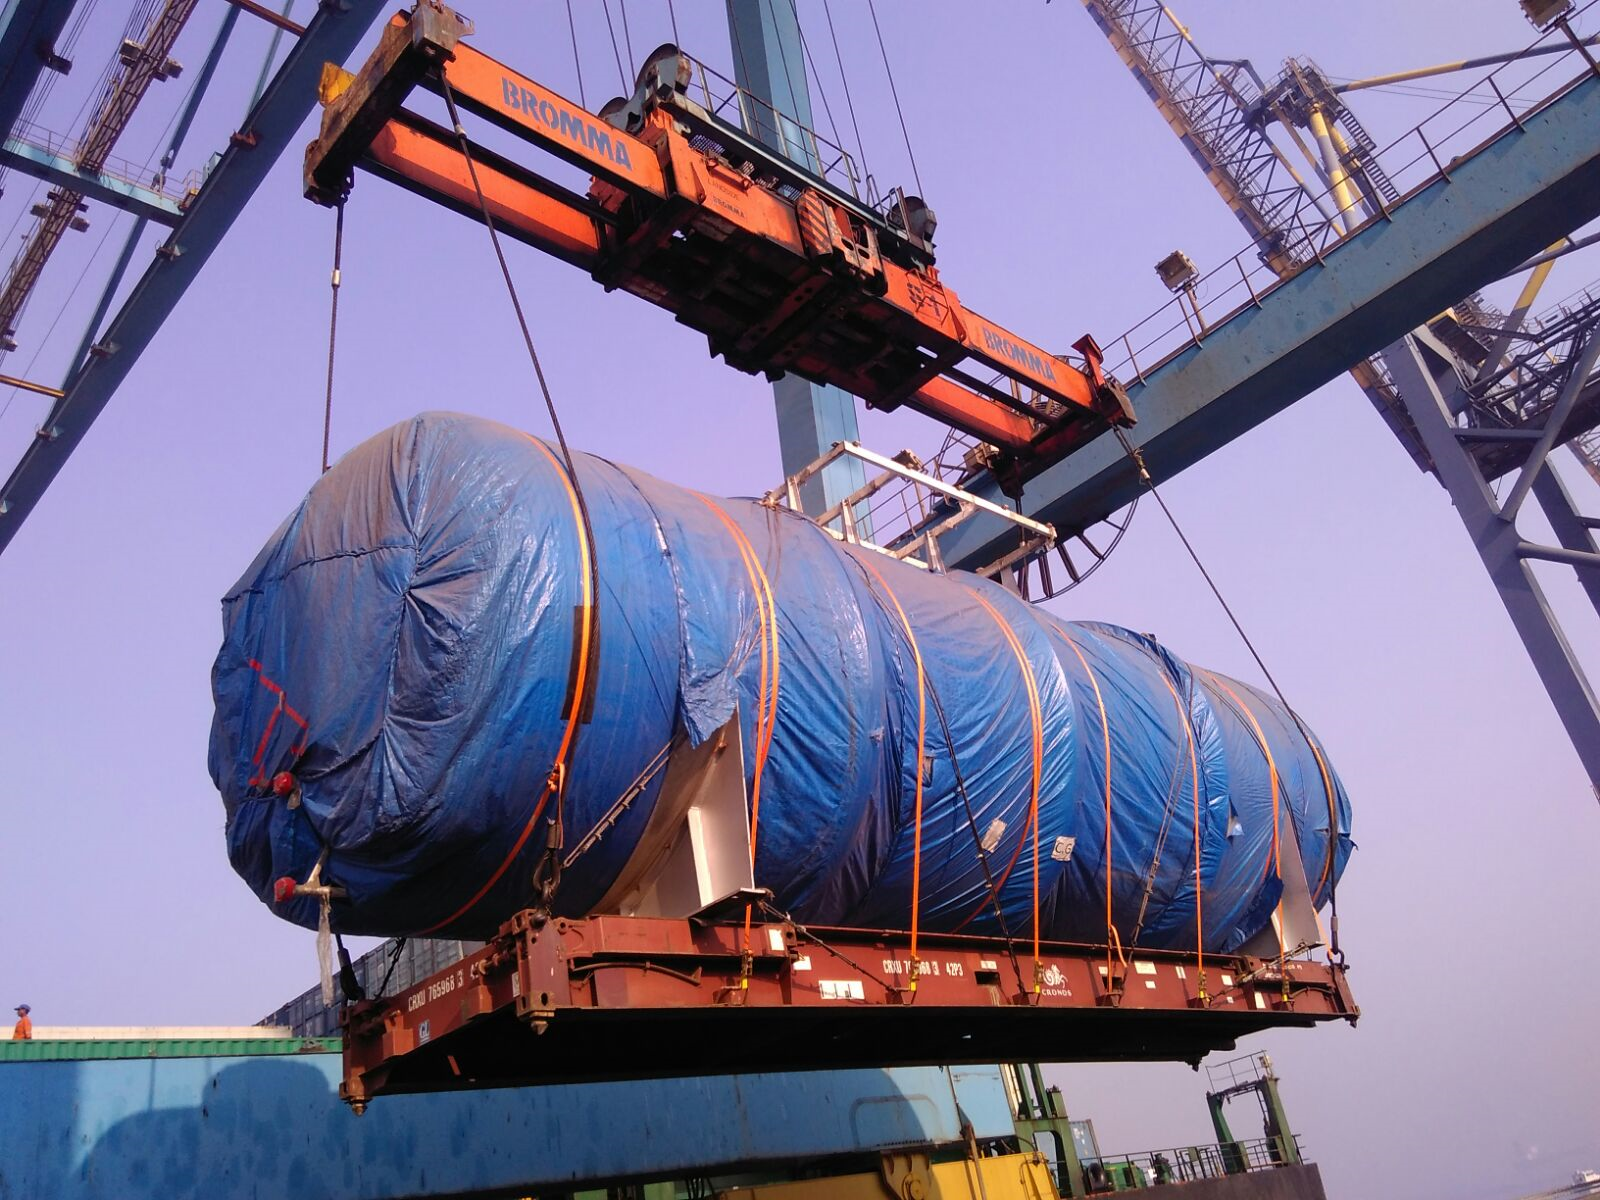 Fleet Line Shipping Llc Dubai Project Cargo Handling